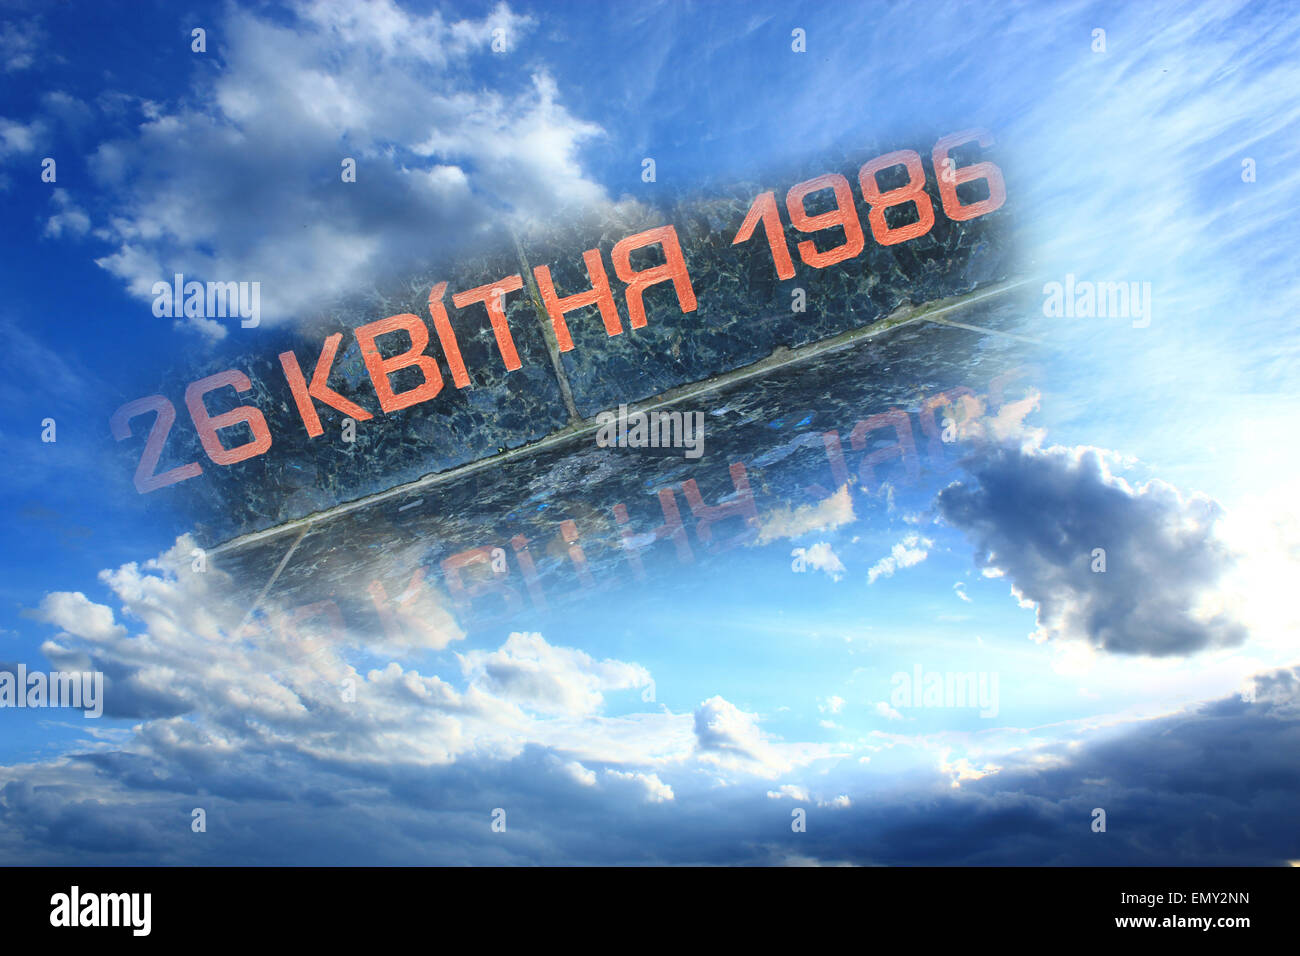 the granitic date of Chernobyl catastrophe in the blue sky - Stock Image